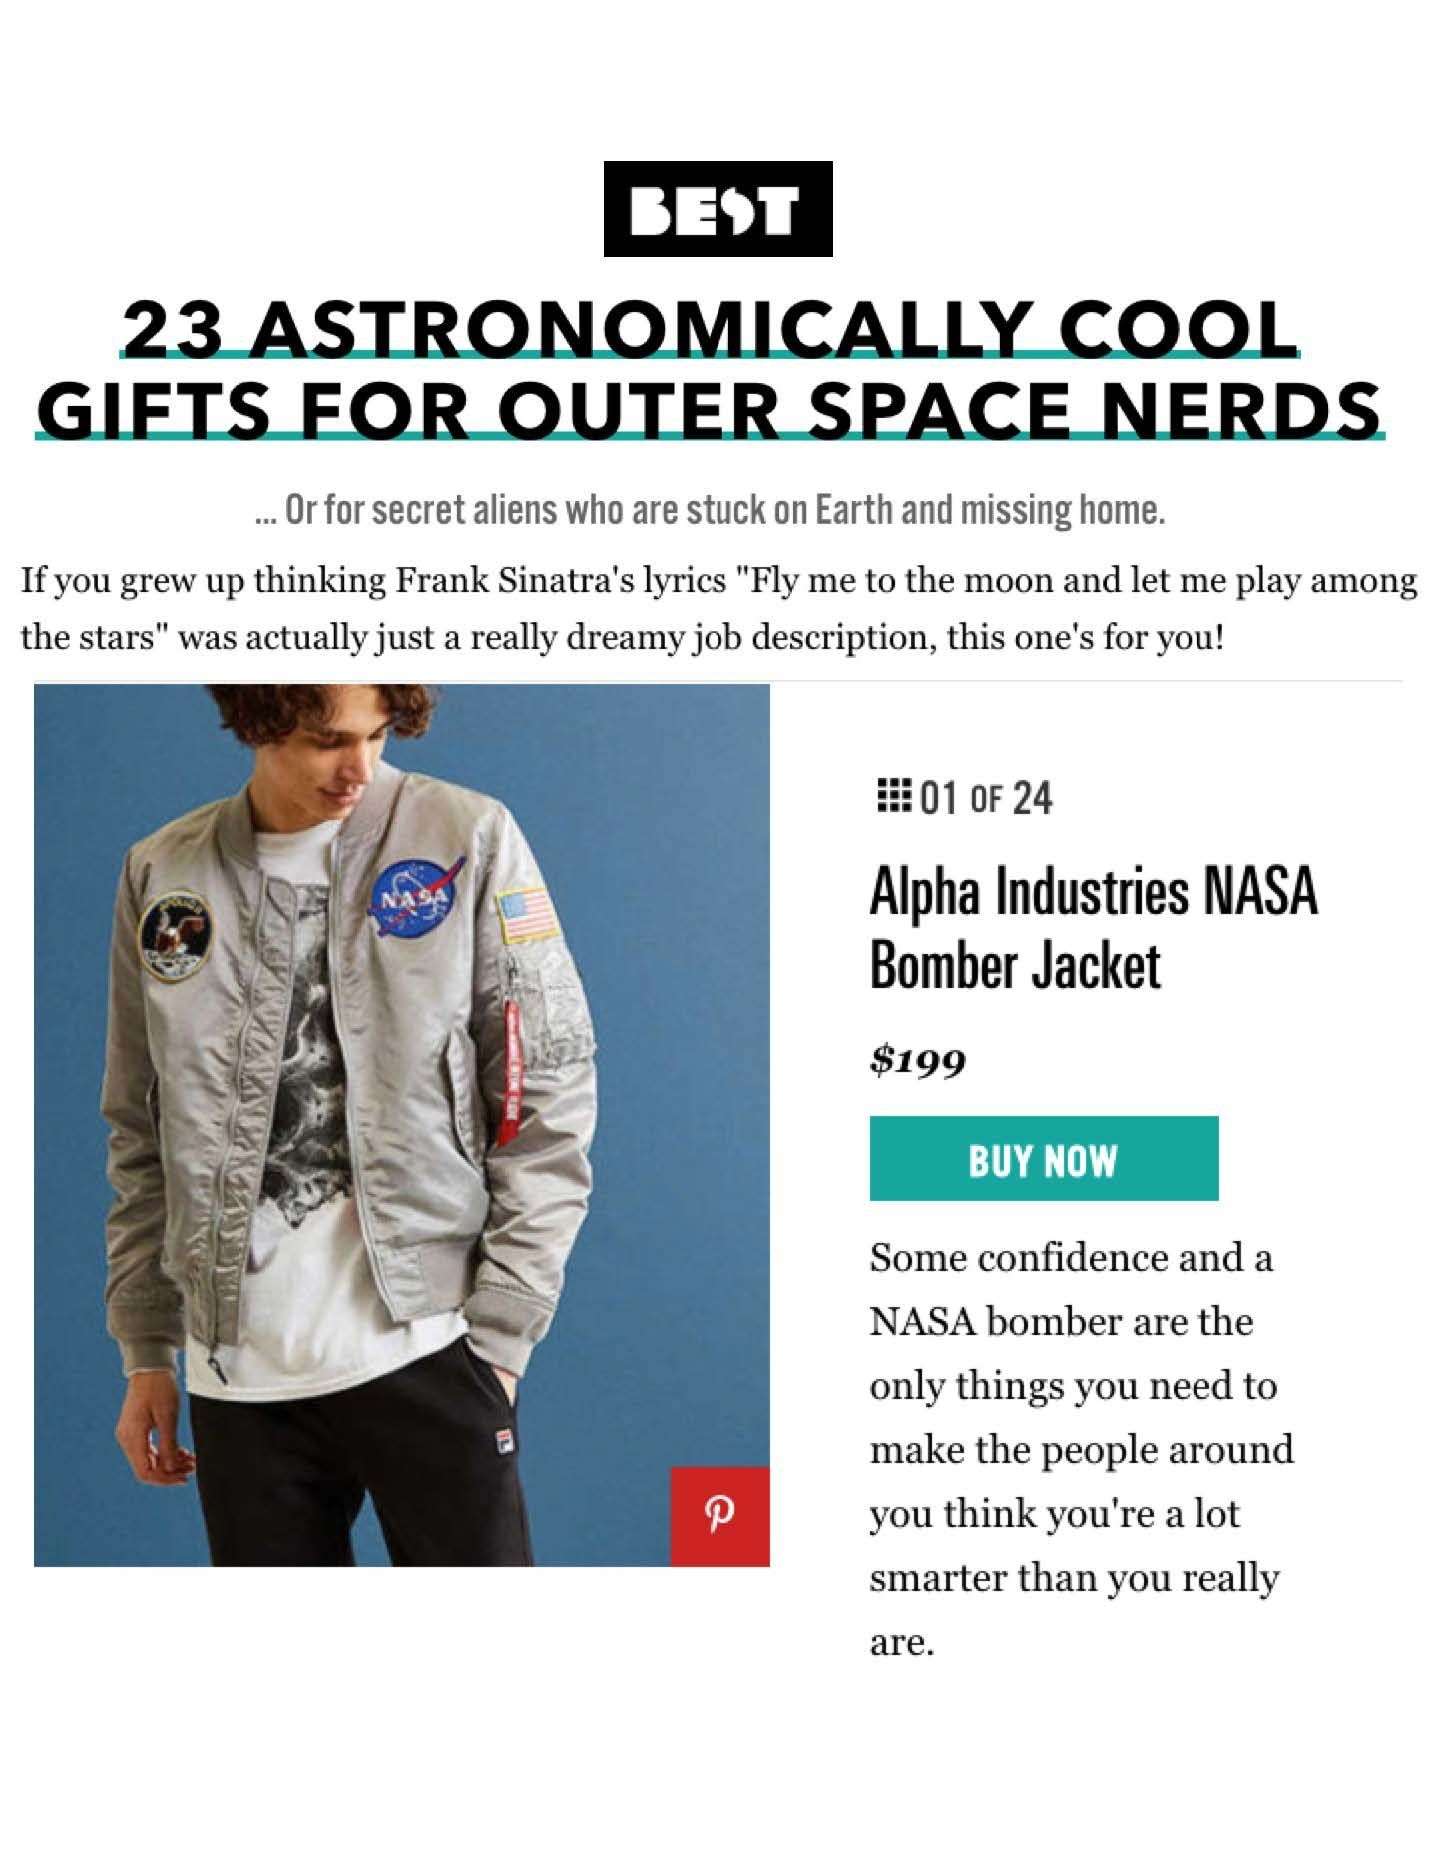 9b95cdae0 23 Astronomically Cool Gifts for Outer Space Nerds | In The News ...